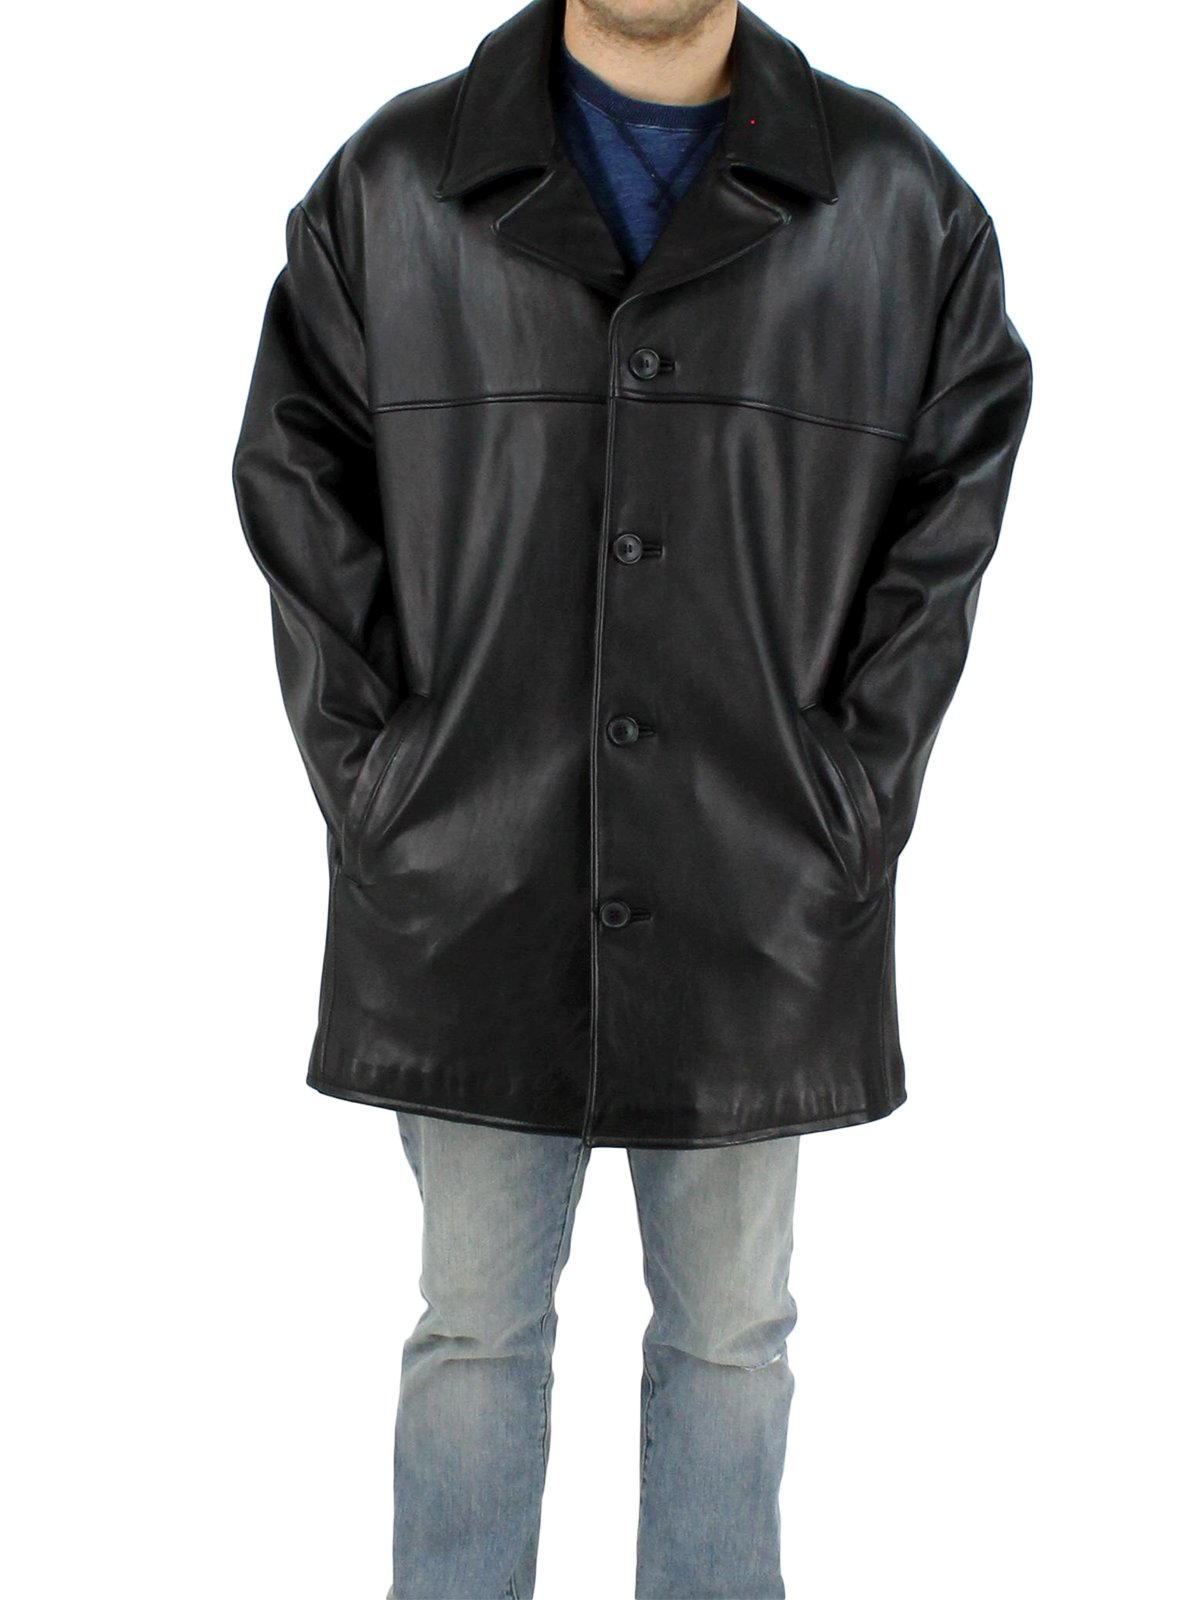 NEW Man's Black Leather Jacket with Removable Thinsulate Lining